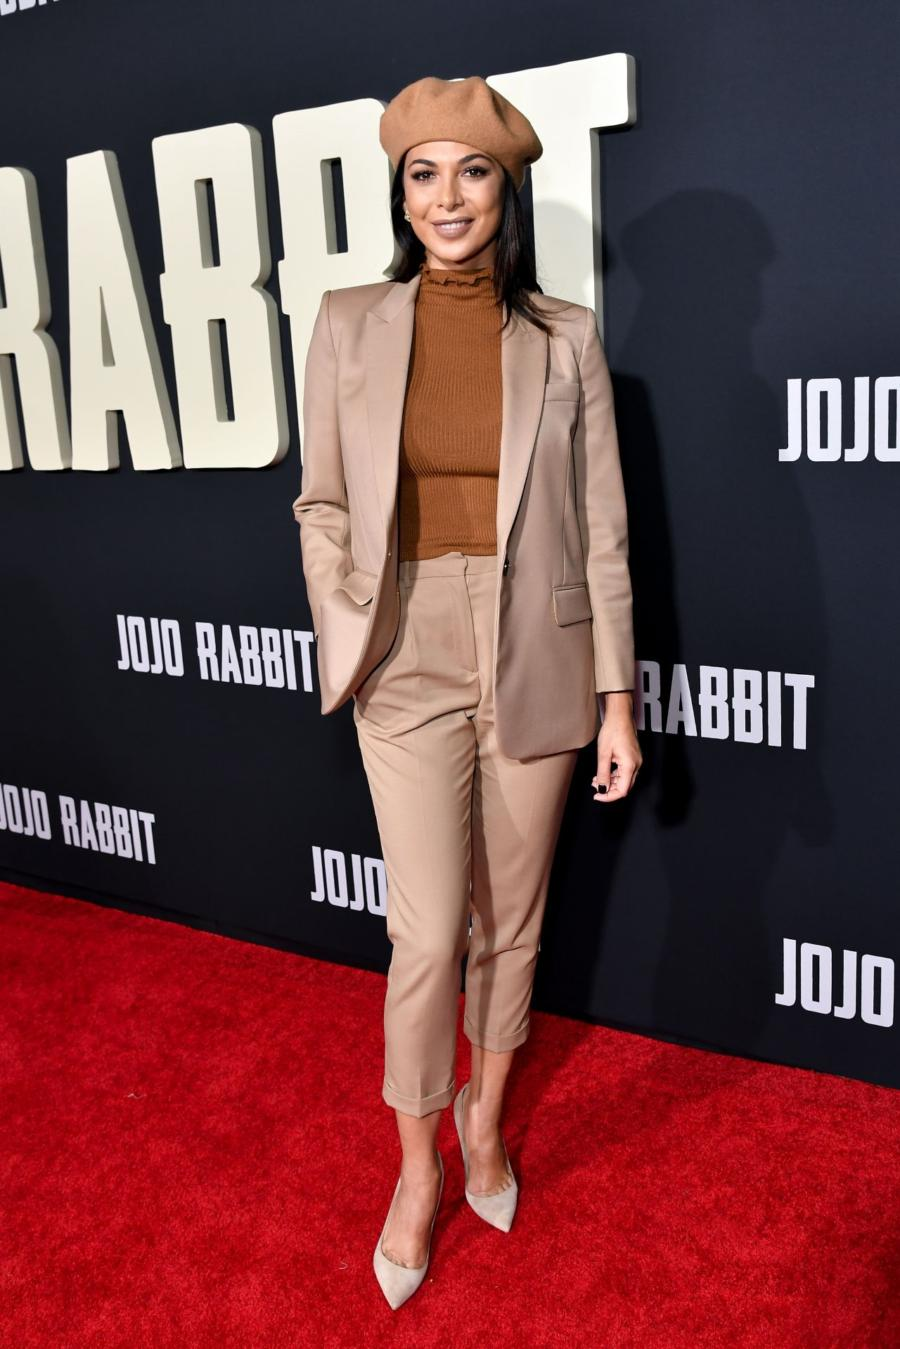 Moran Atias at Jojo Rabbit Premiere in Los Angeles